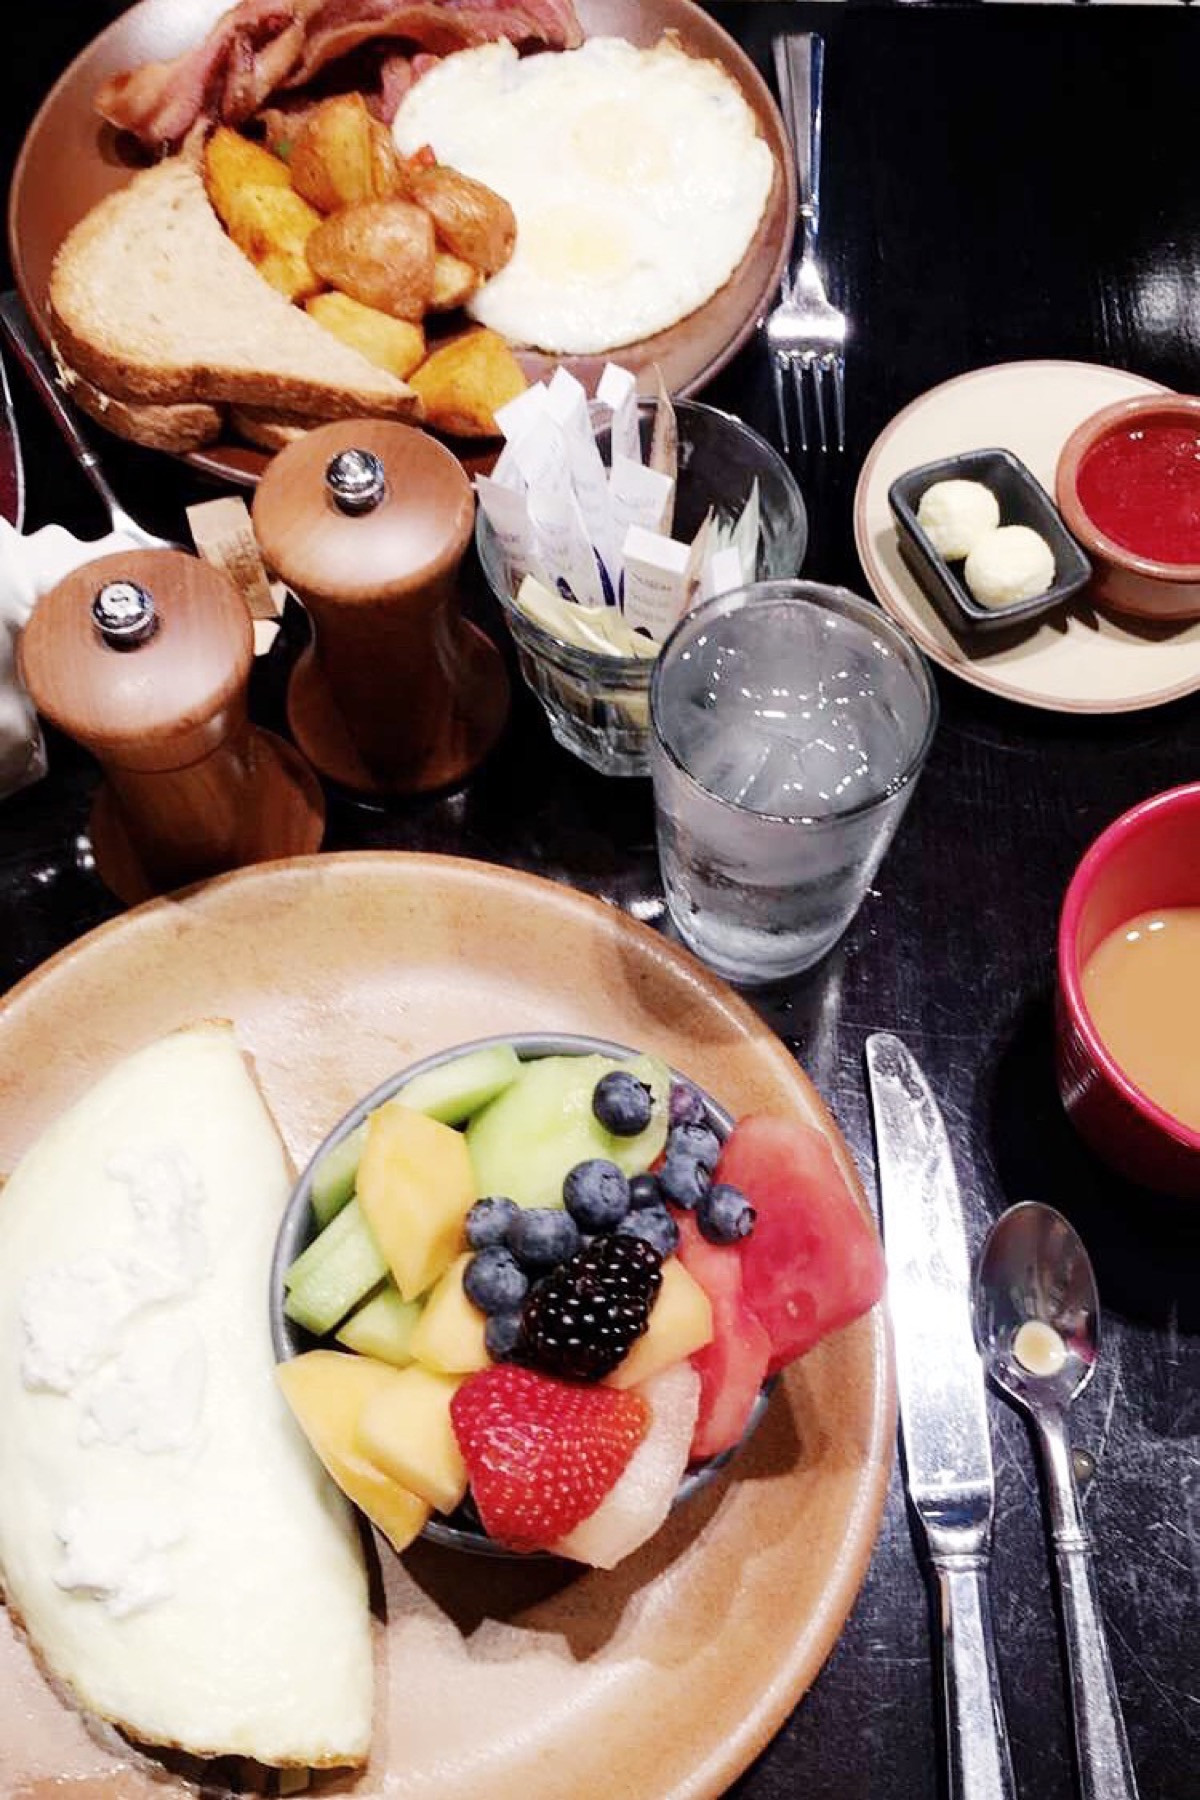 Healthy Breakfast San Francisco  Things To Do When Visiting San Francisco Annie Spano